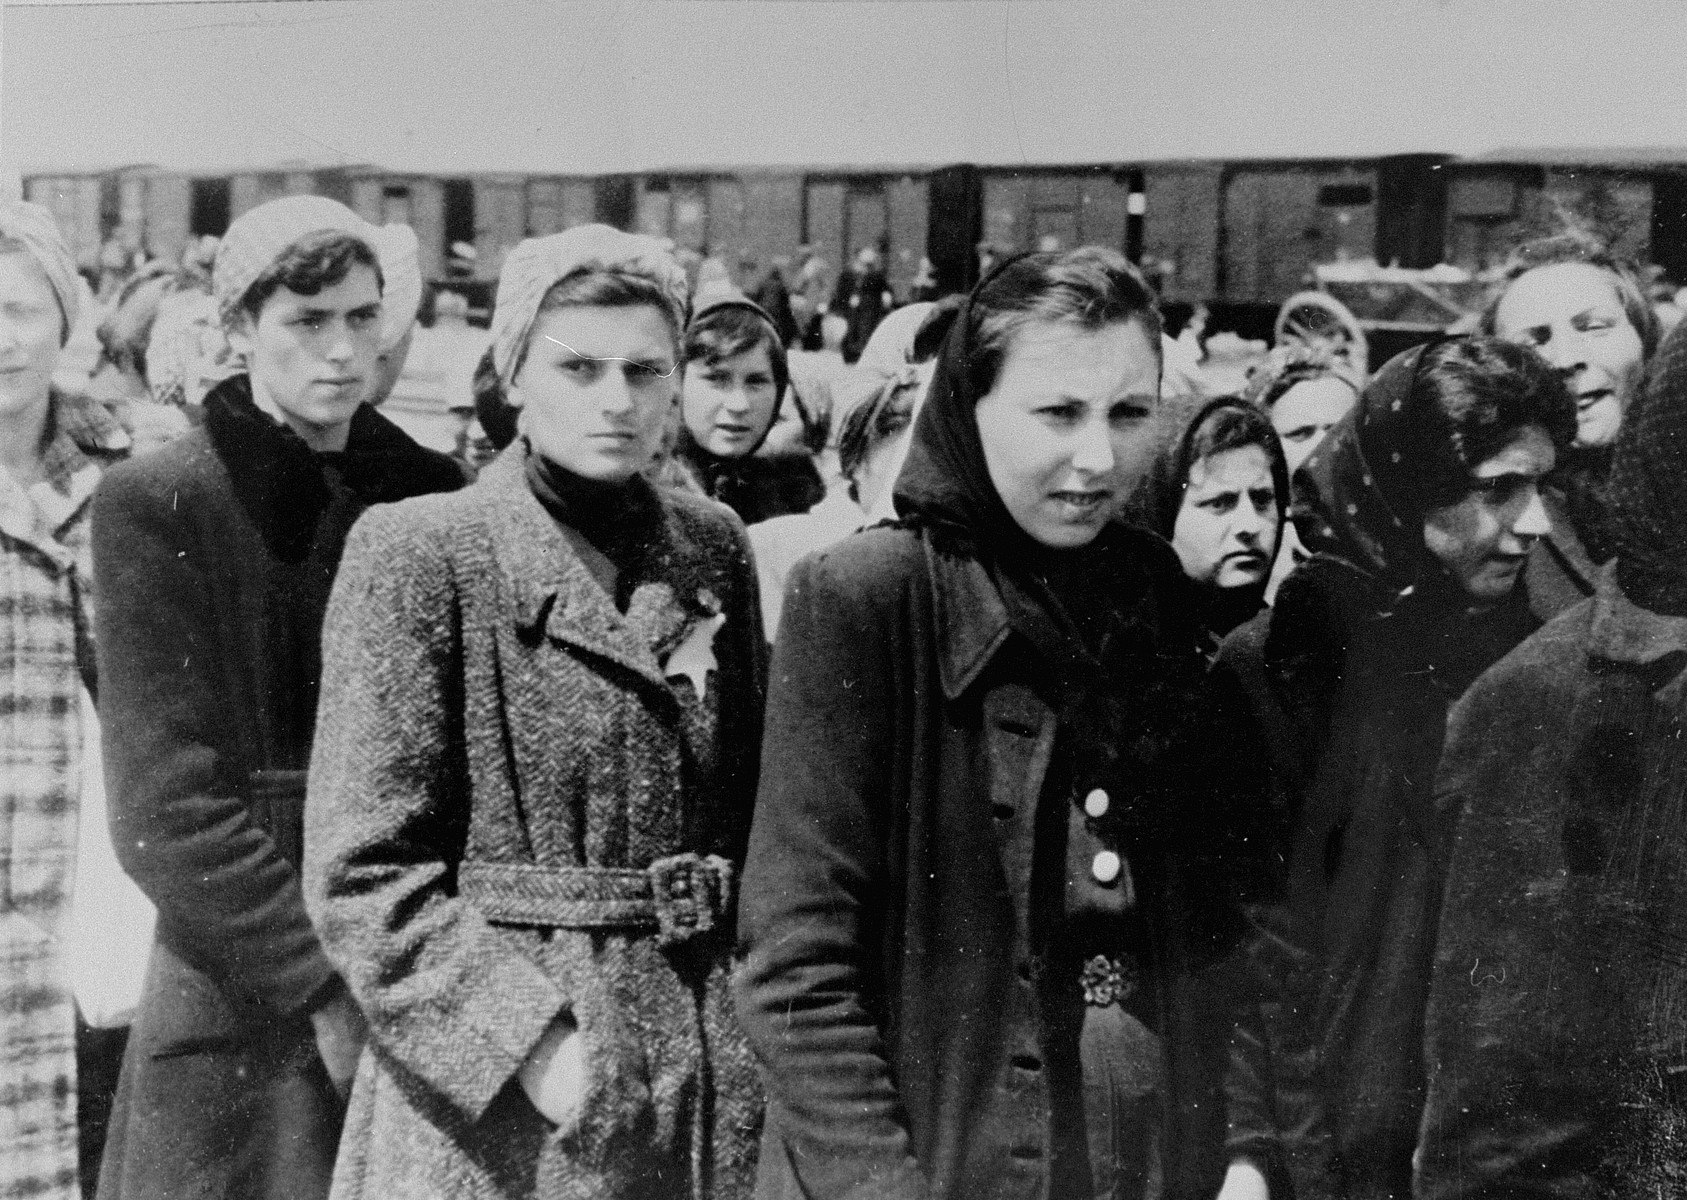 Jews from Subcarpathian Rus who have been selected for forced labor at Auschwitz-Birkenau, wait to be taken to another section of the camp.  Among those pictured is Elki Feig (second from the left) and Malvina Ickovics Einhorn (third from the right, in the back).